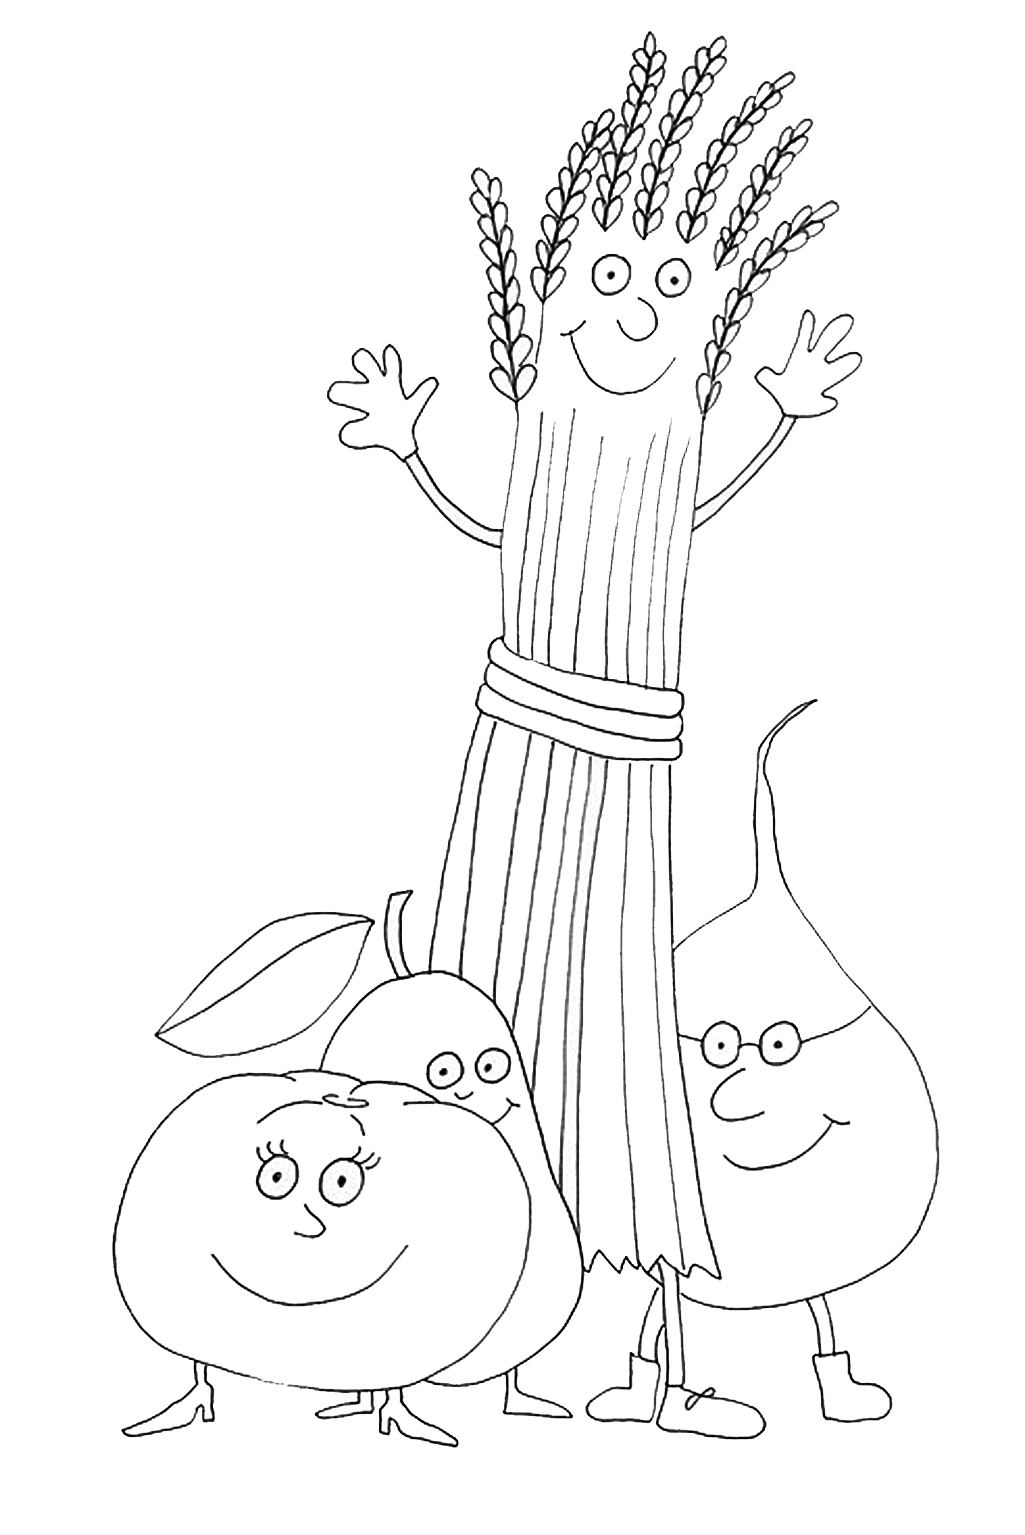 1025x1535 Thanksgiving Coloring Pages Tomato Pear Grain